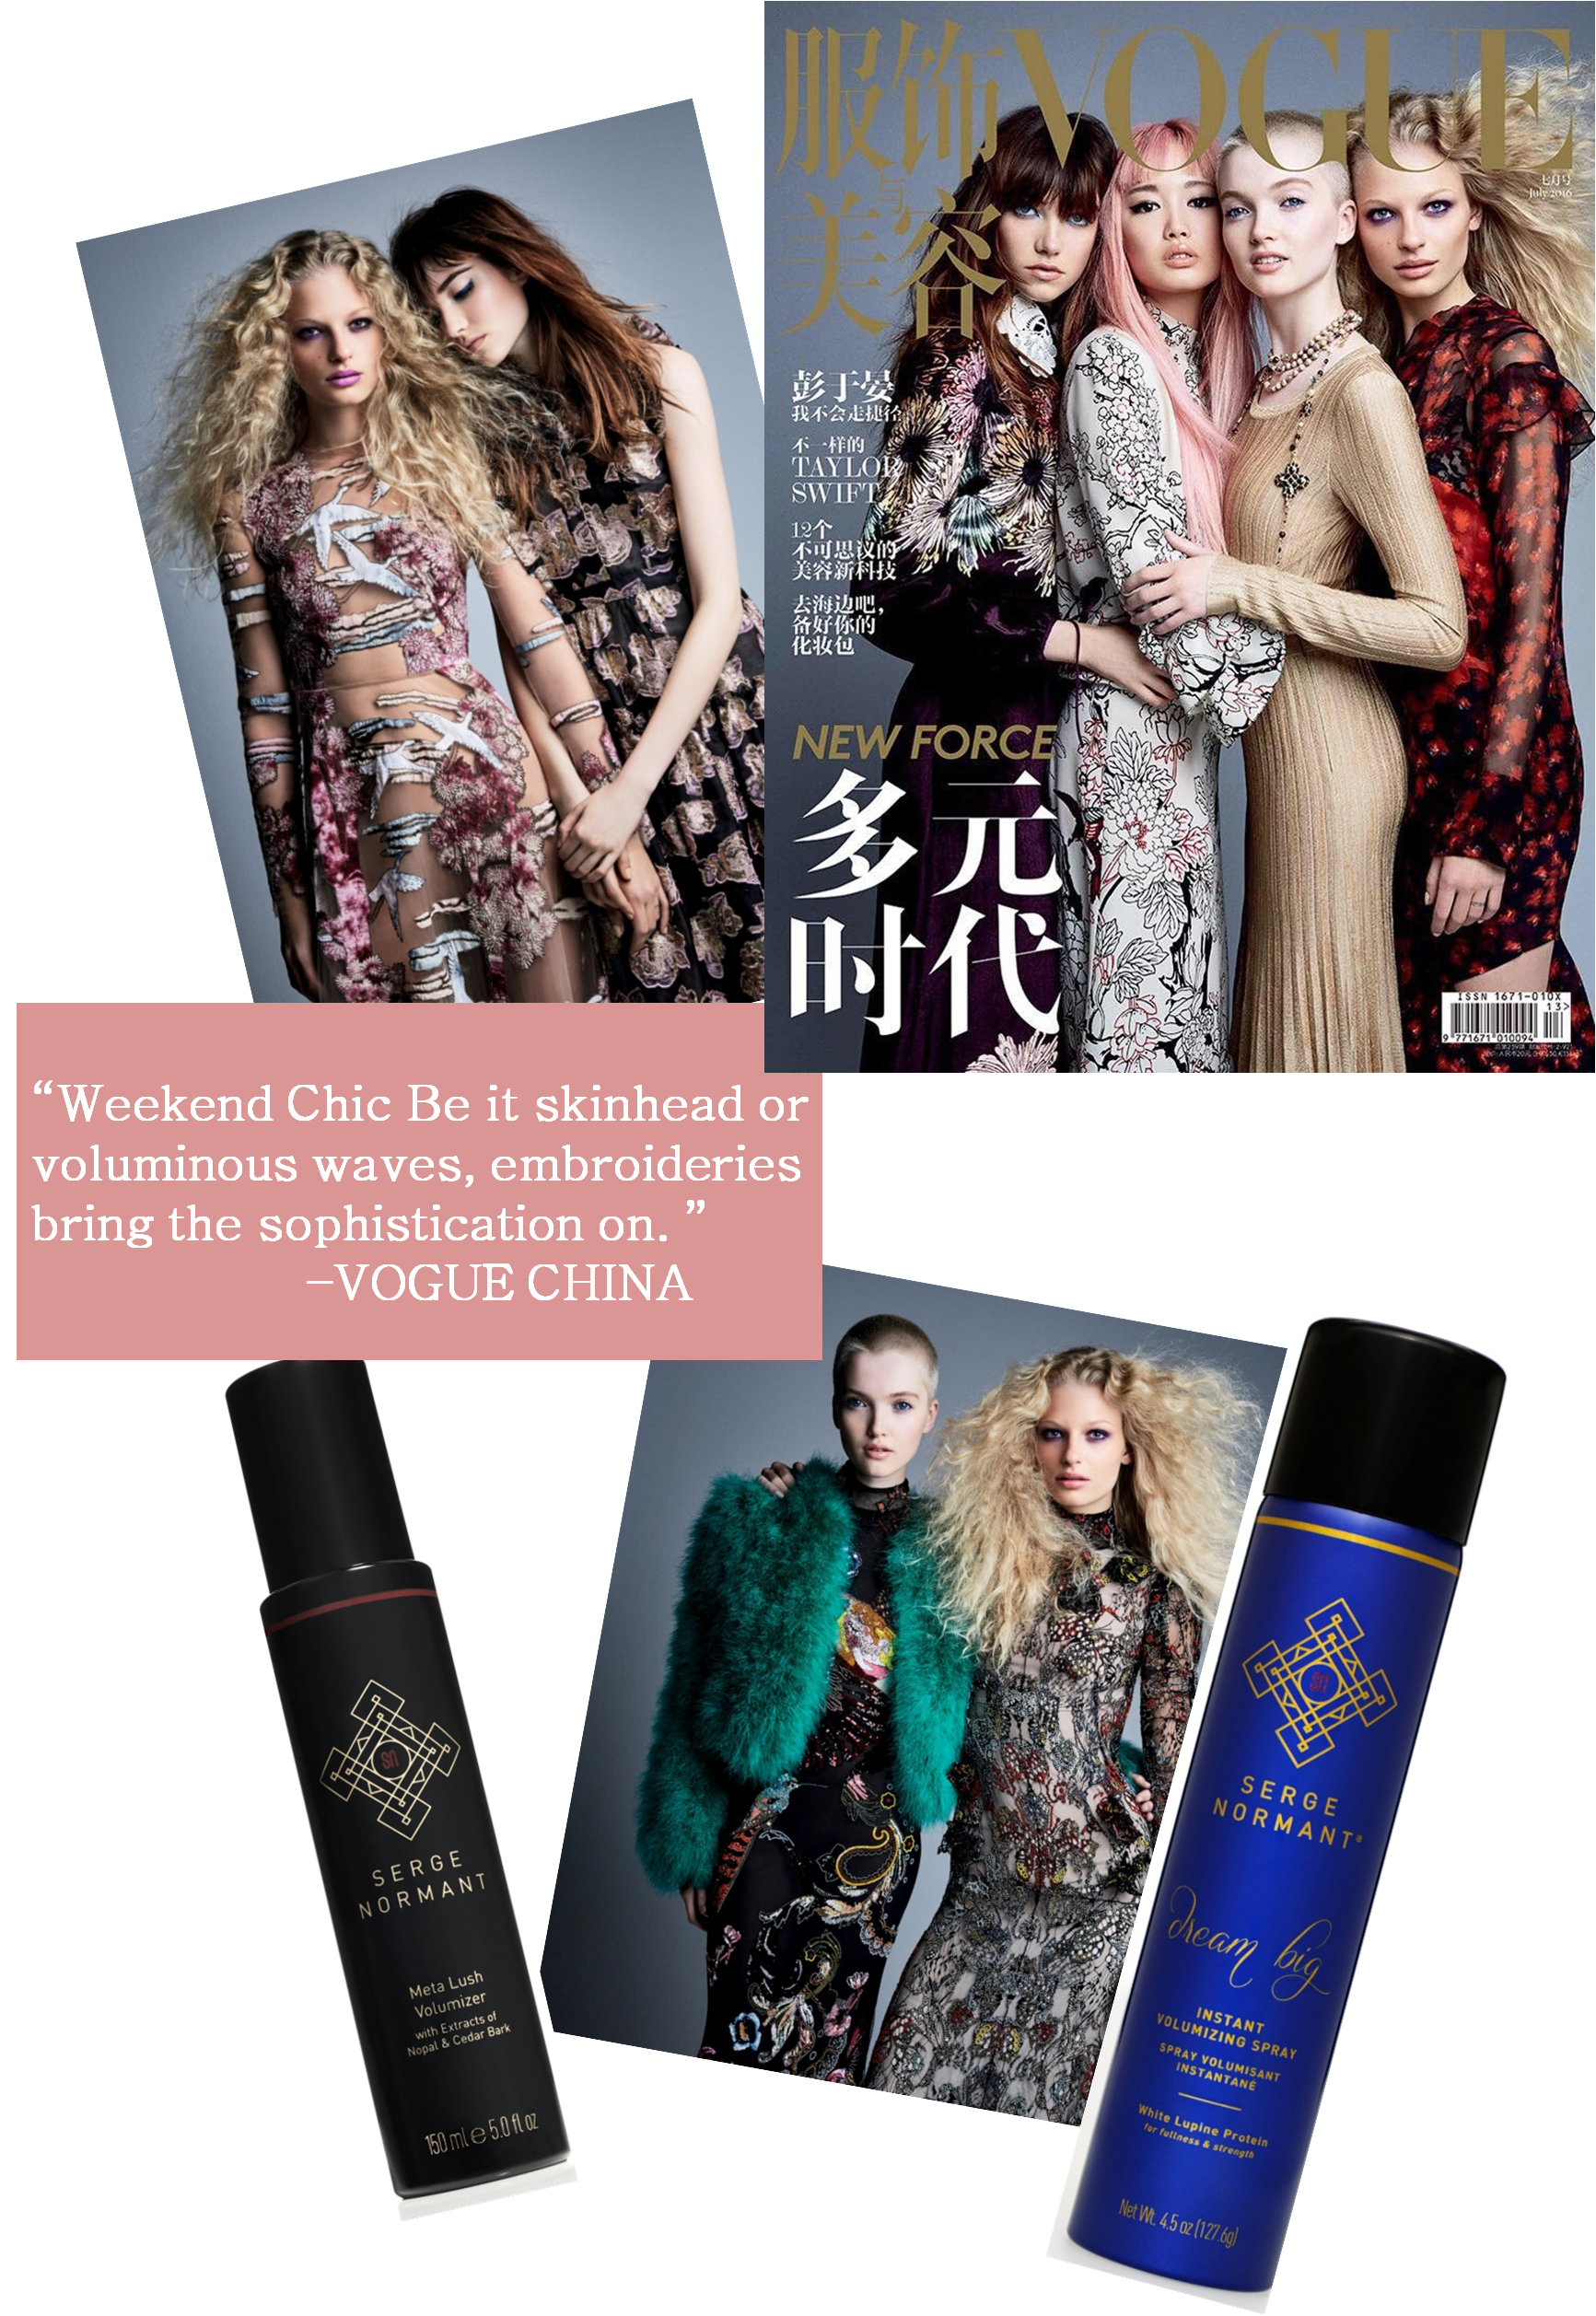 in-the-news-vogue-china.jpg